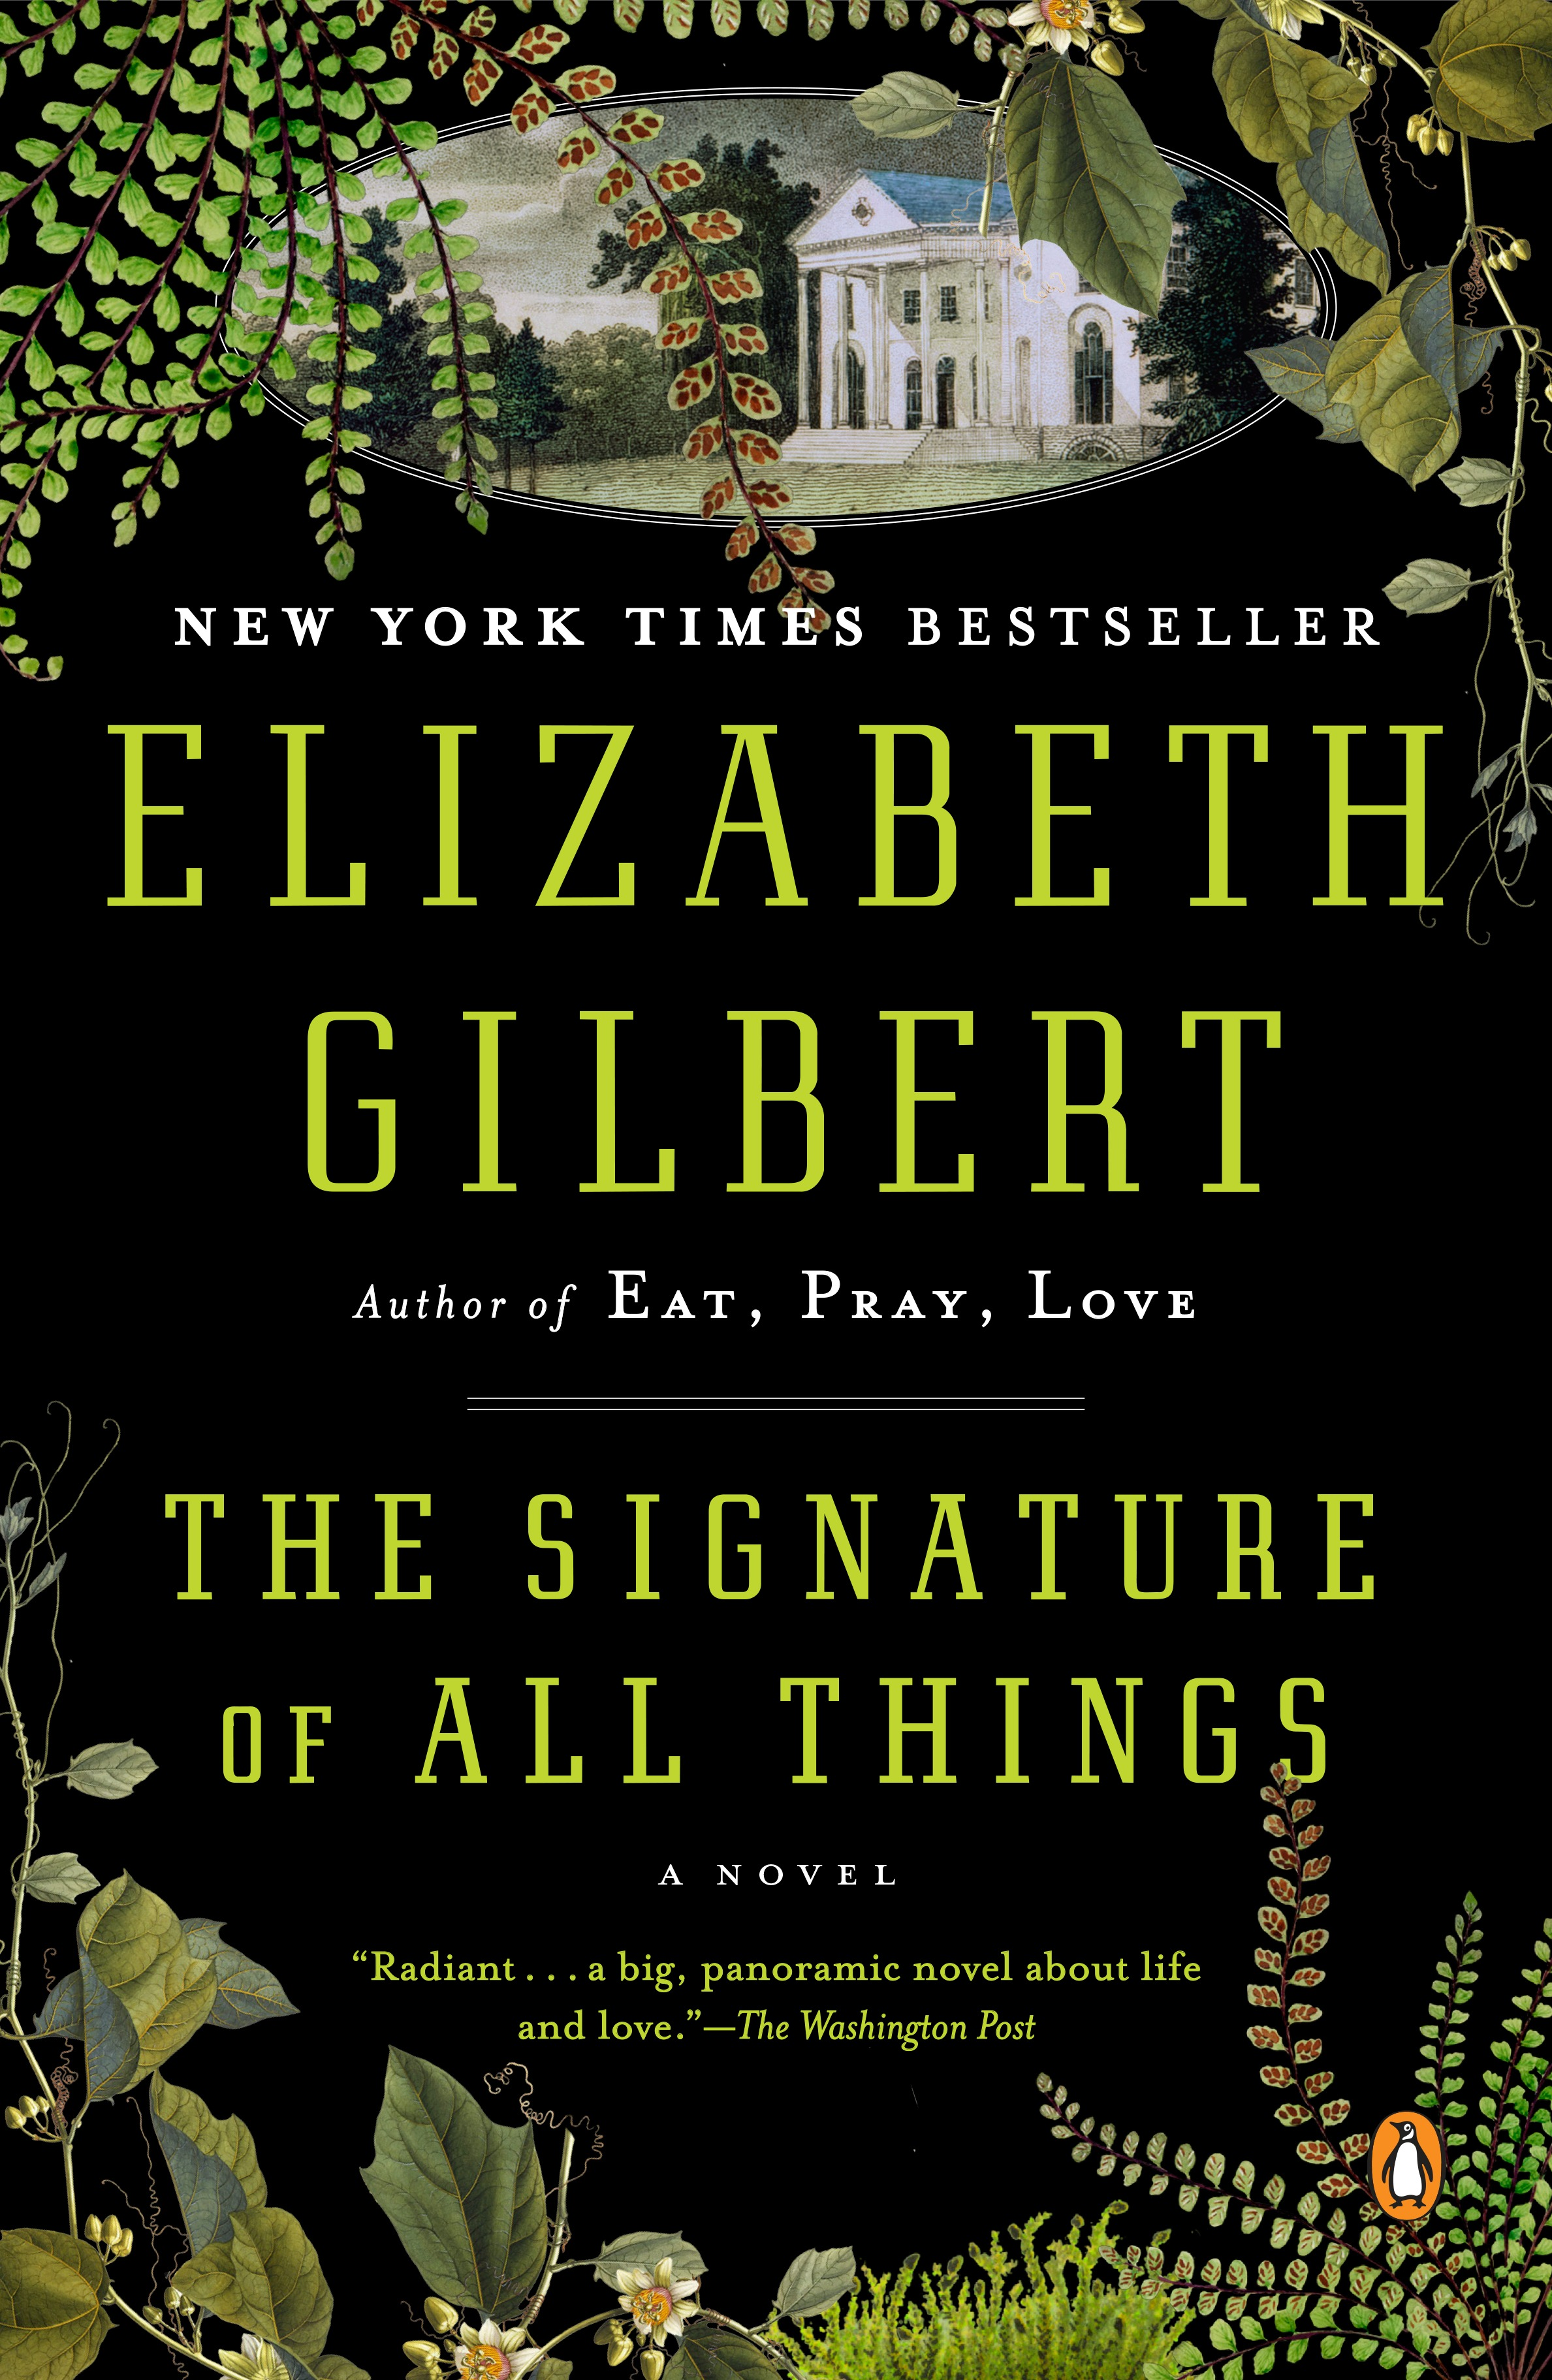 &quot;The Signature of All Things&quot; by Elizabeth Gilbert (Image: Courtesy{&amp;nbsp;}Riverhead Books){&amp;nbsp;}<p></p>